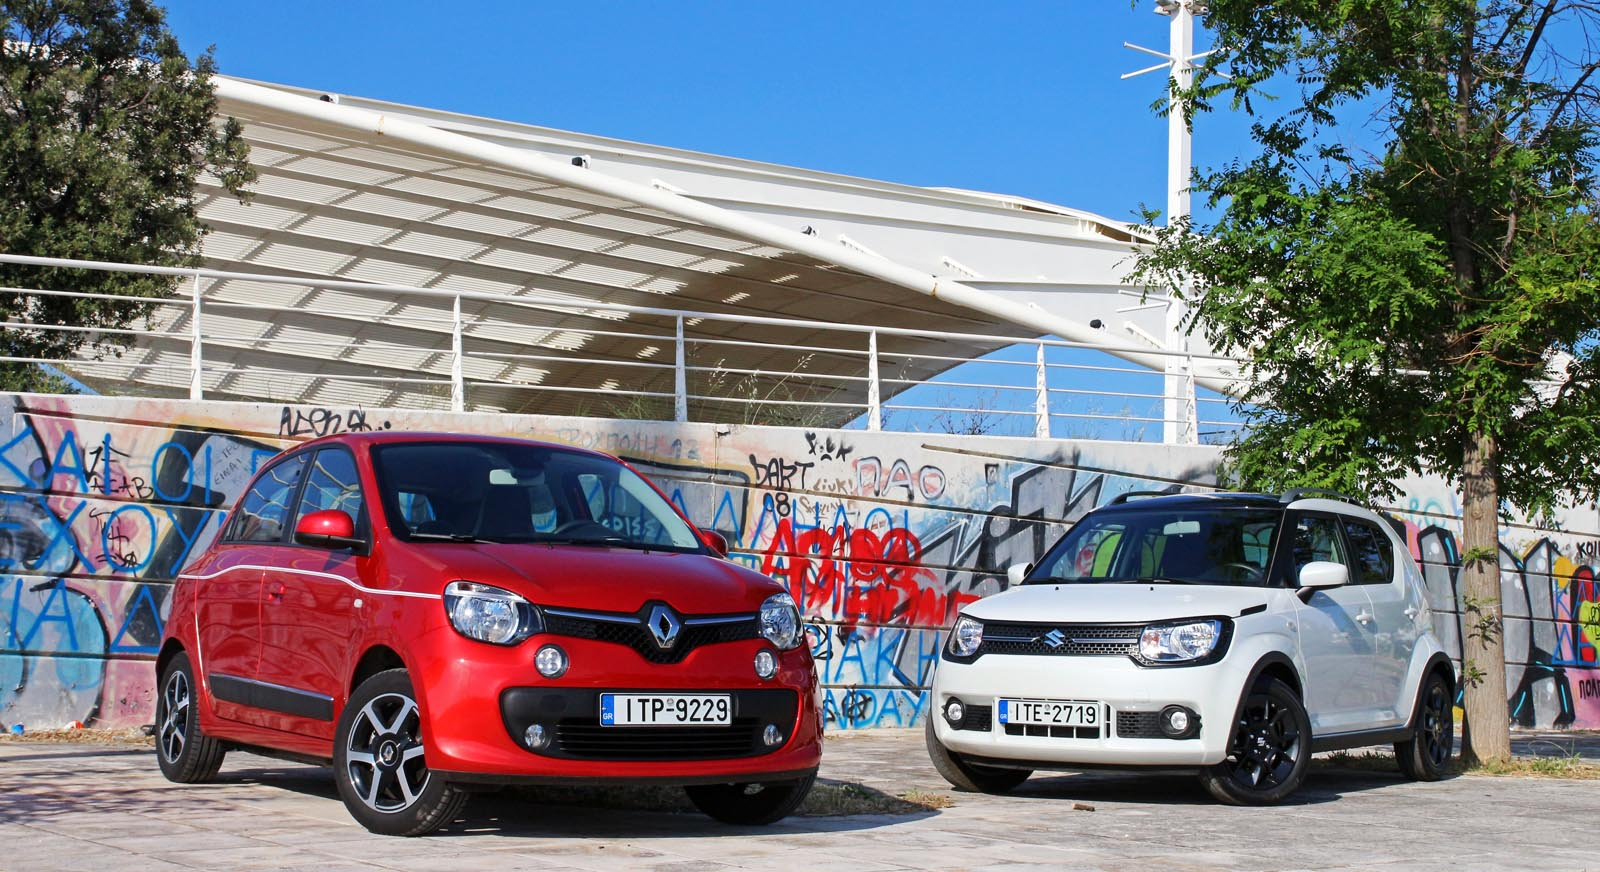 Photo of Renault Twingo 0.9 vs Suzuki Ignis 1.2 [test drive]